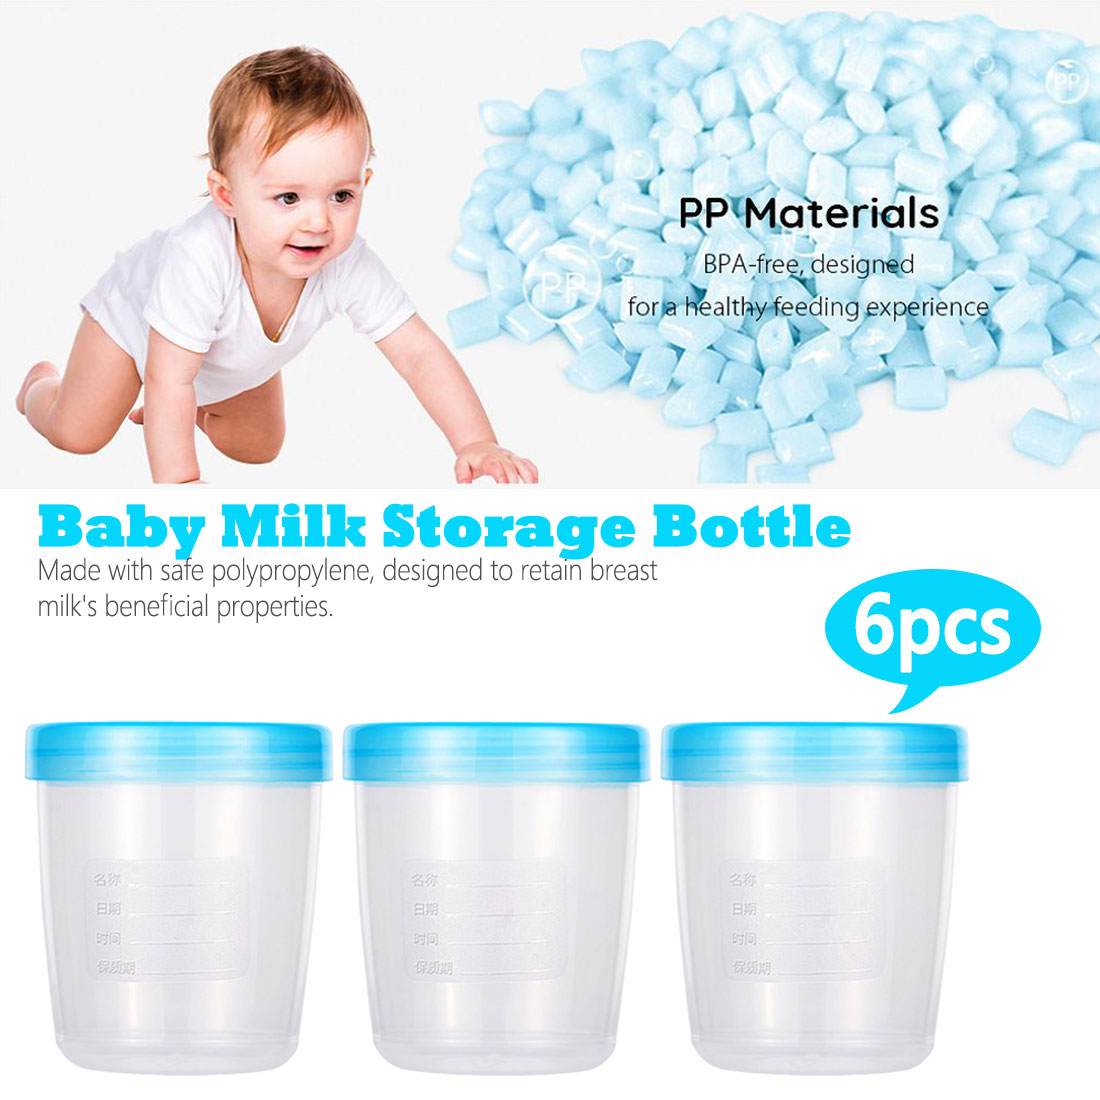 6 Pcs Baby Breast Milk Storage Bottle Collection Infant Newborn Food Freezer Container BPA Free Products Blue 180ml Capacity